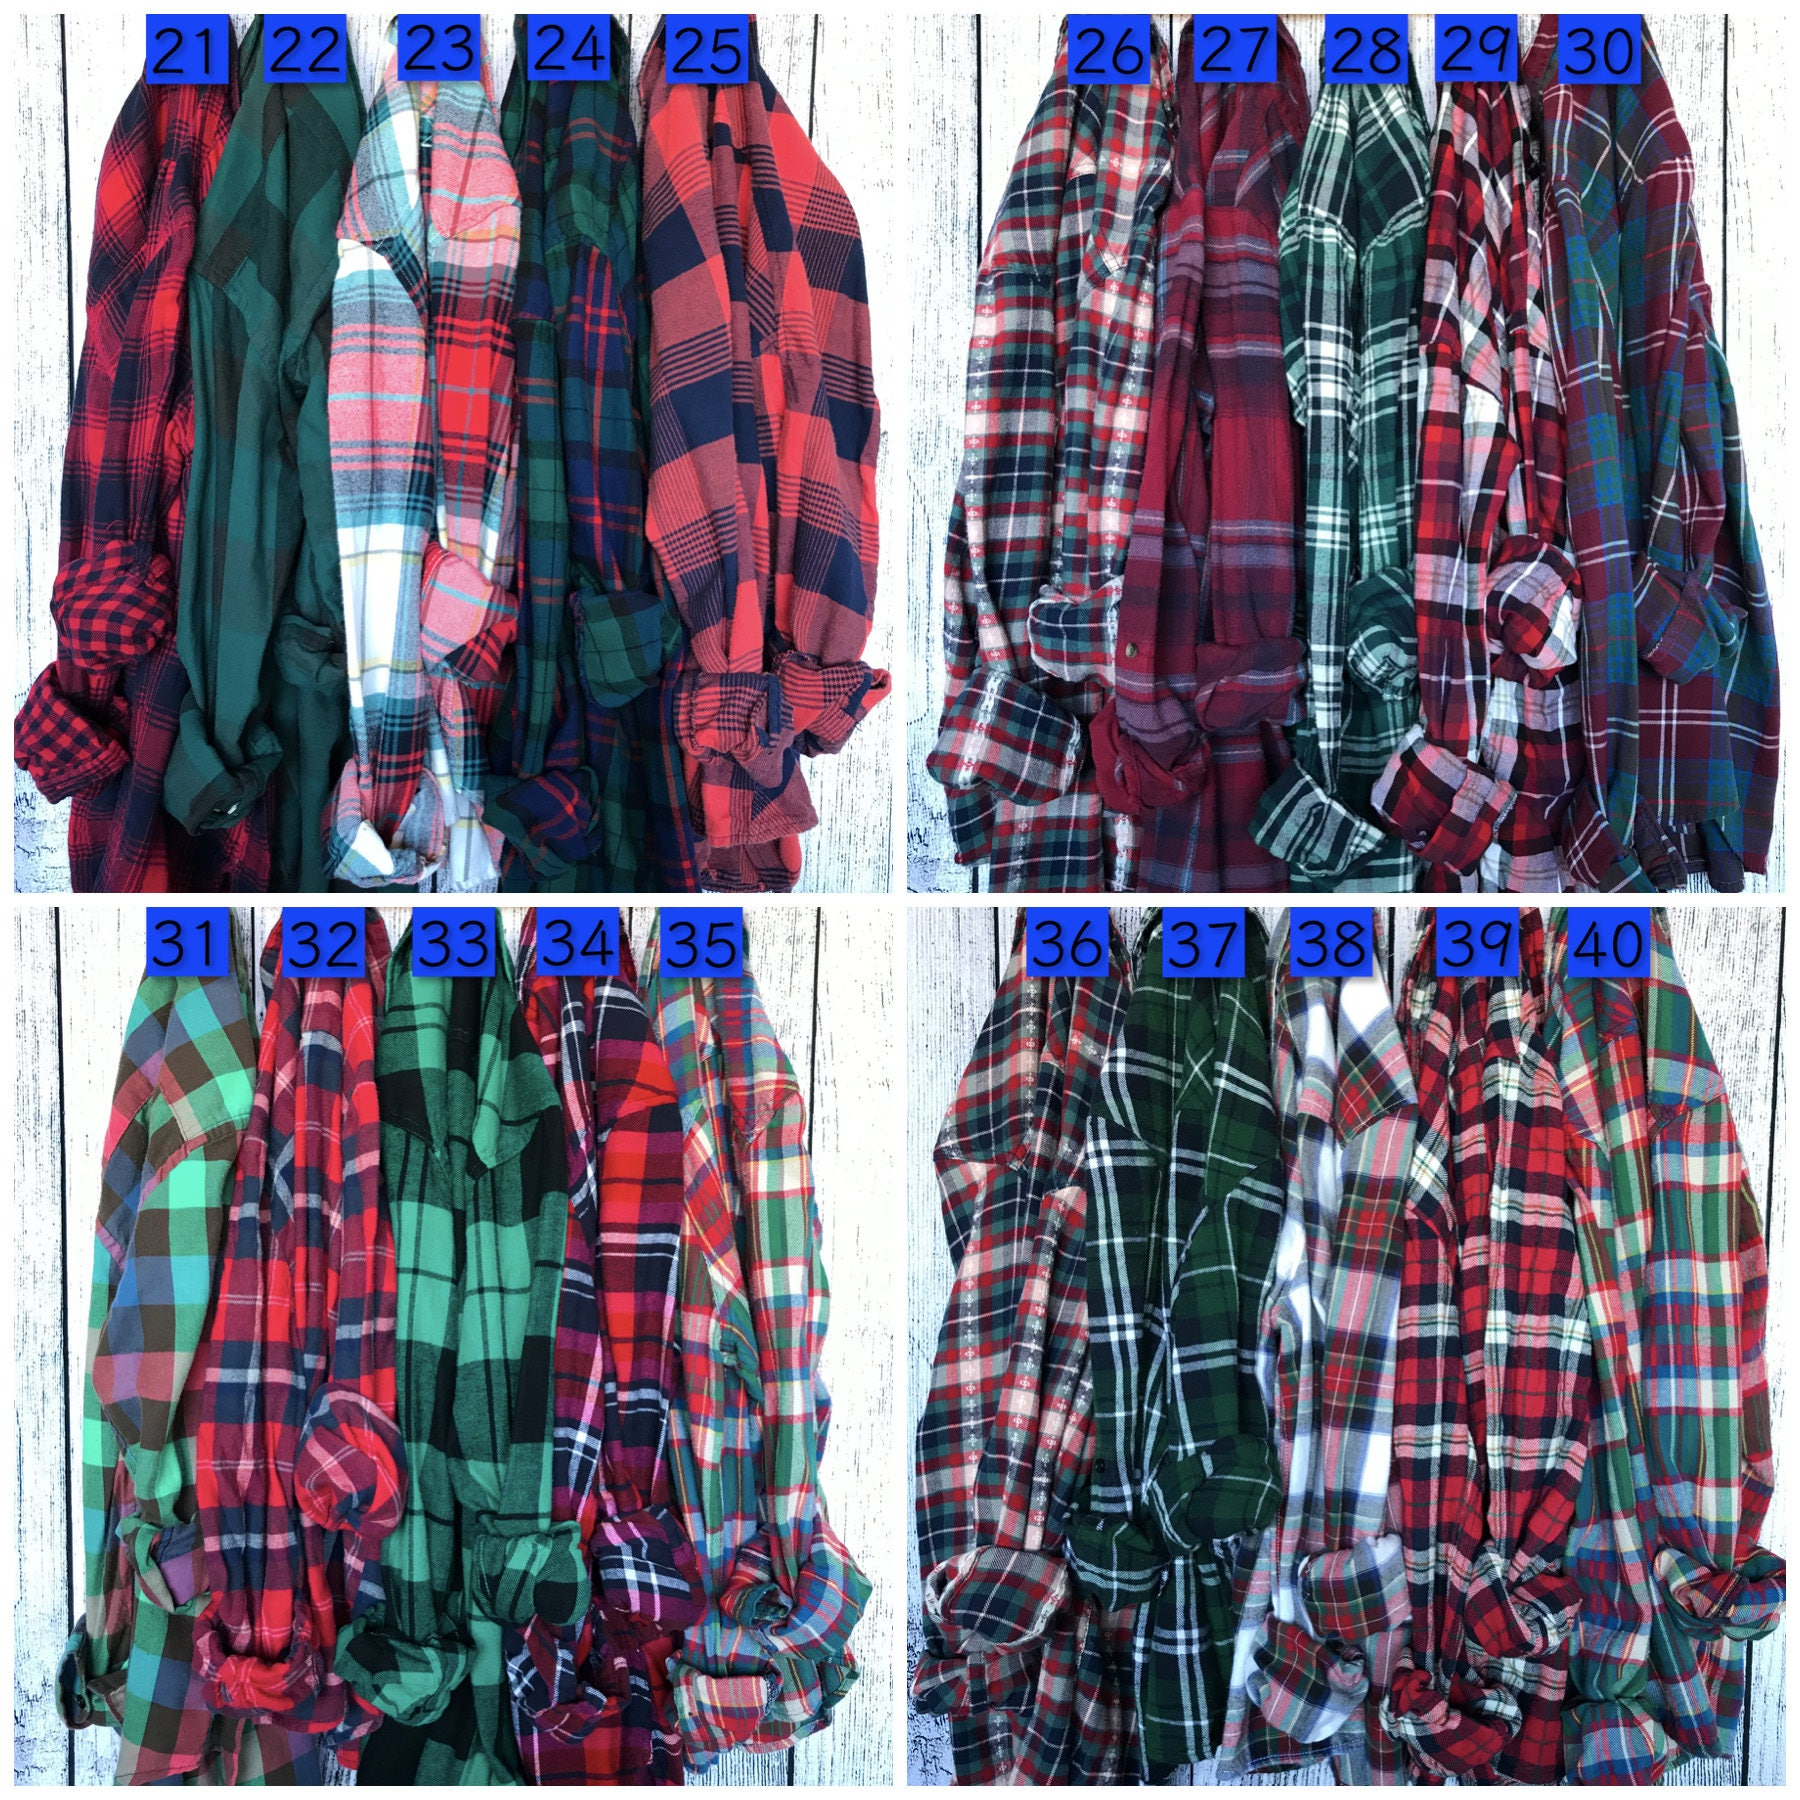 Velvet Vampire Bachelorette Party Shirts Bridesmaid Flannels For Hen Or Getting Ready Womens Flannel Shirt Gift